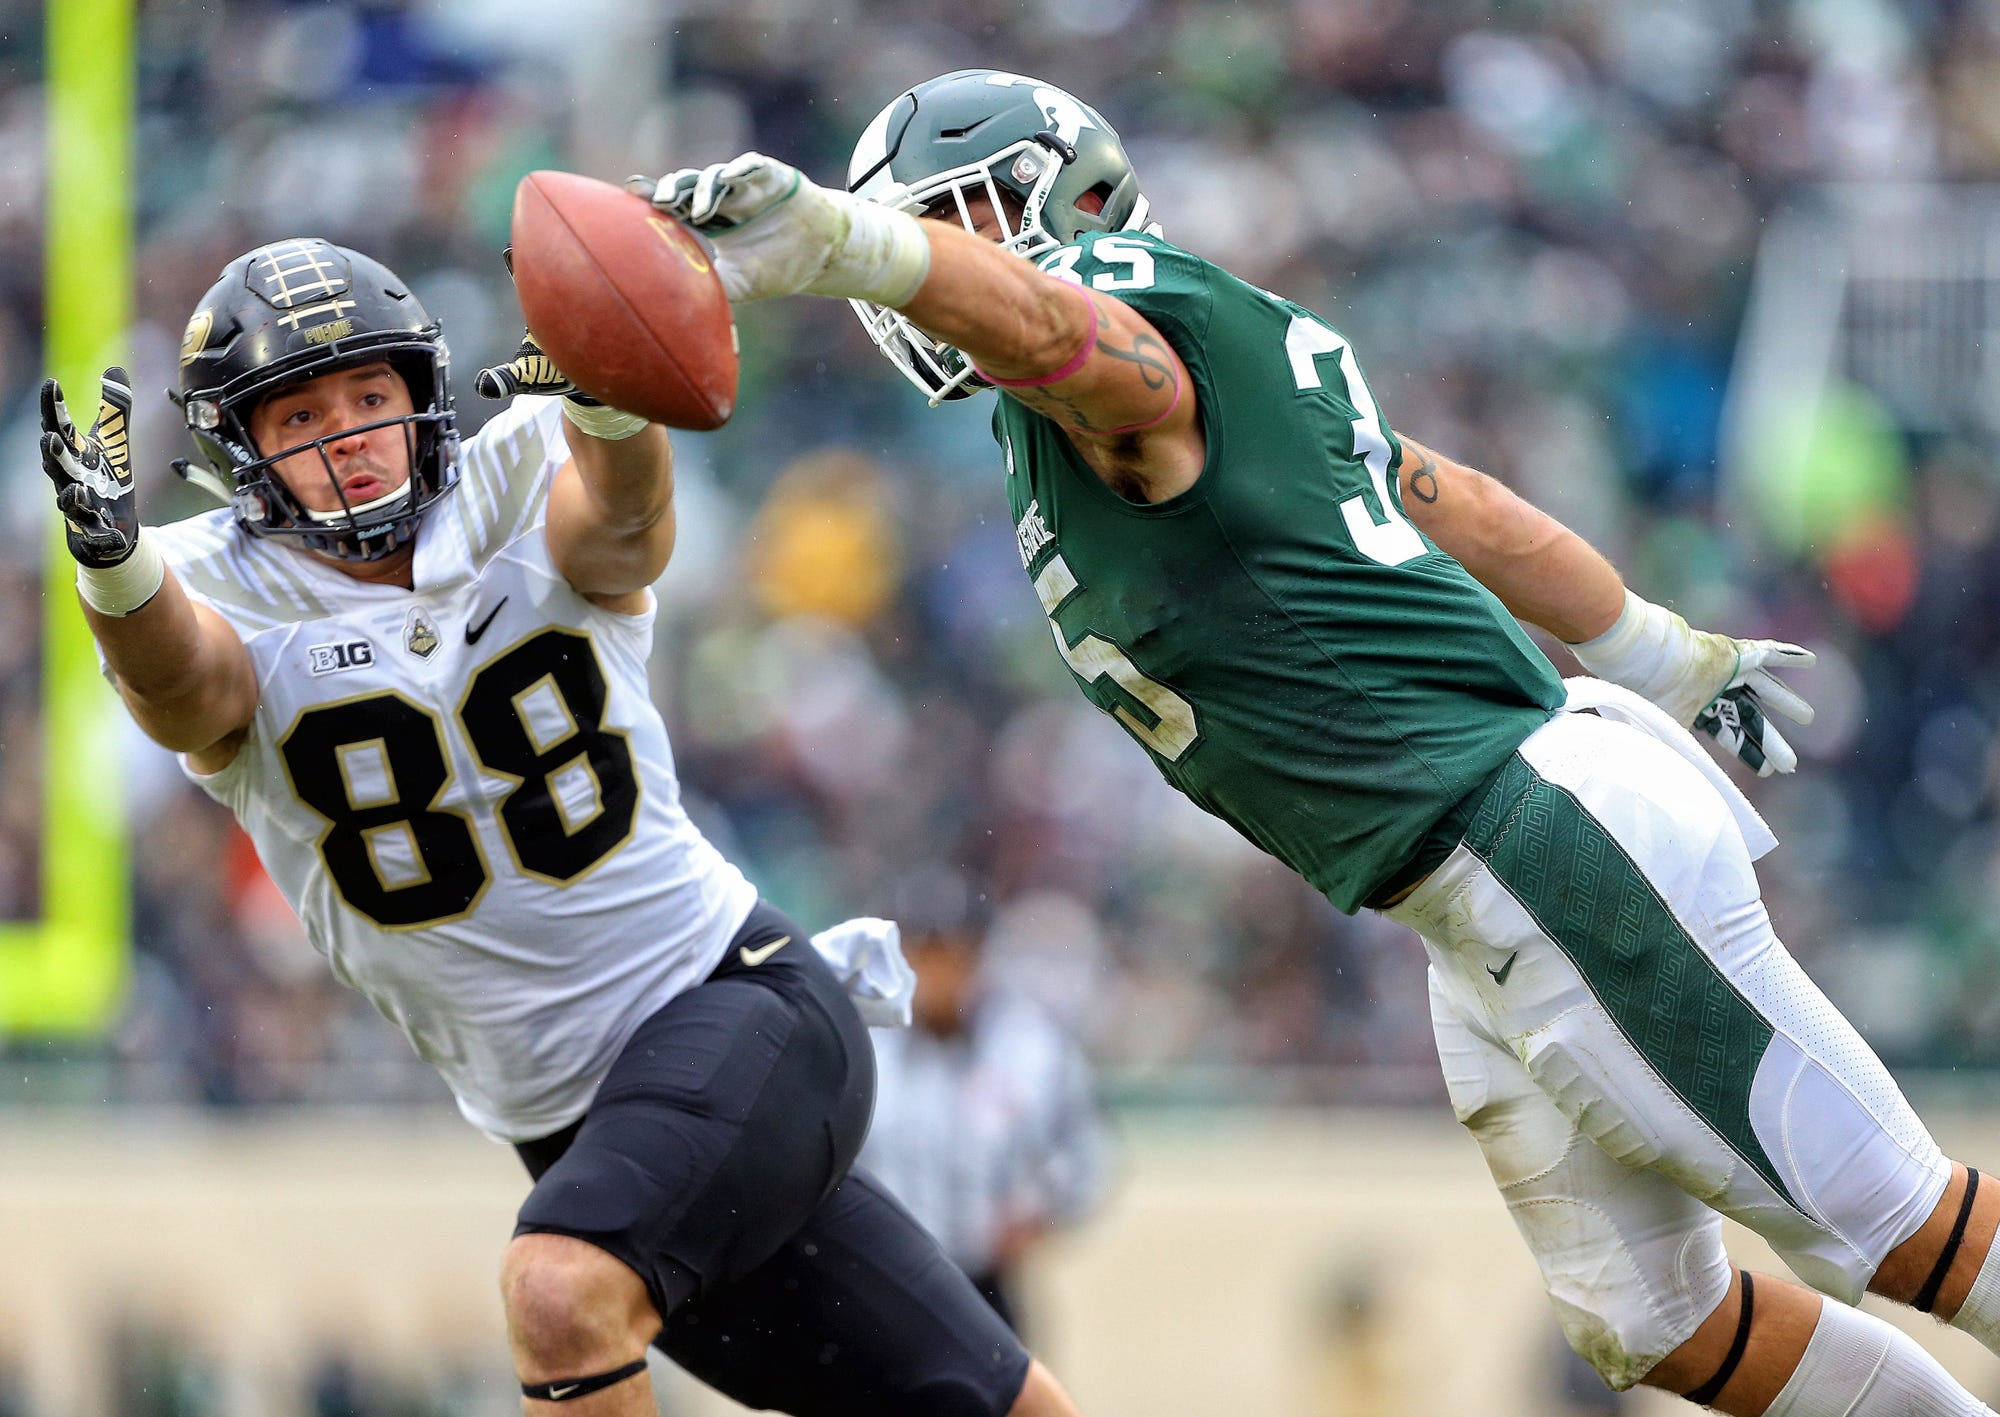 Michigan State Spartans linebacker Joe Bachie (35) knocks down pass intended for Purdue Boilermakers tight end Cole Herdman (88) during the first half of a game at Spartan Stadium on Oct. 27, 2018.